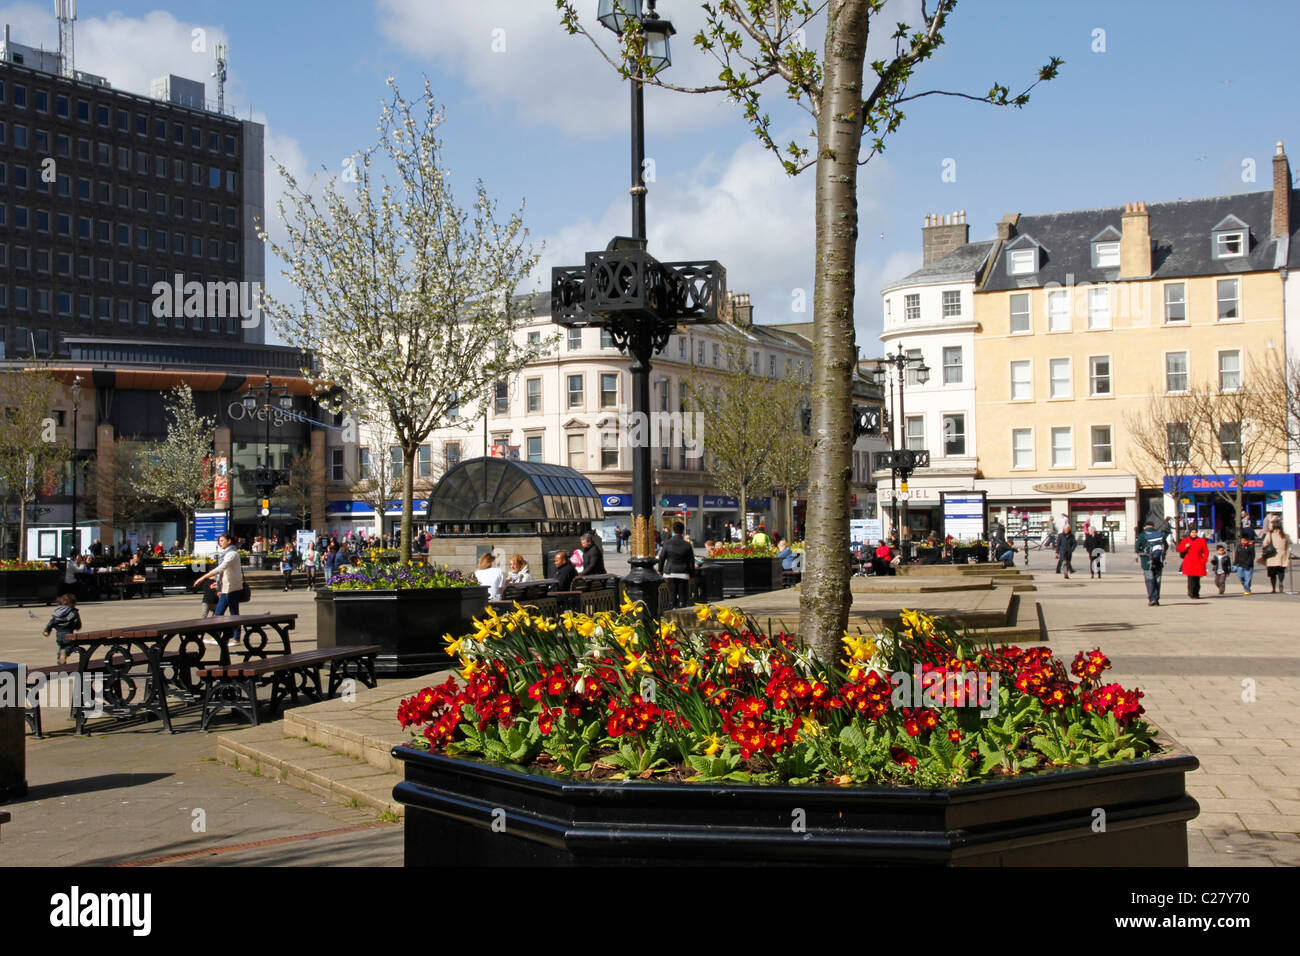 City Square, Dundee, Tayside - Stock Image